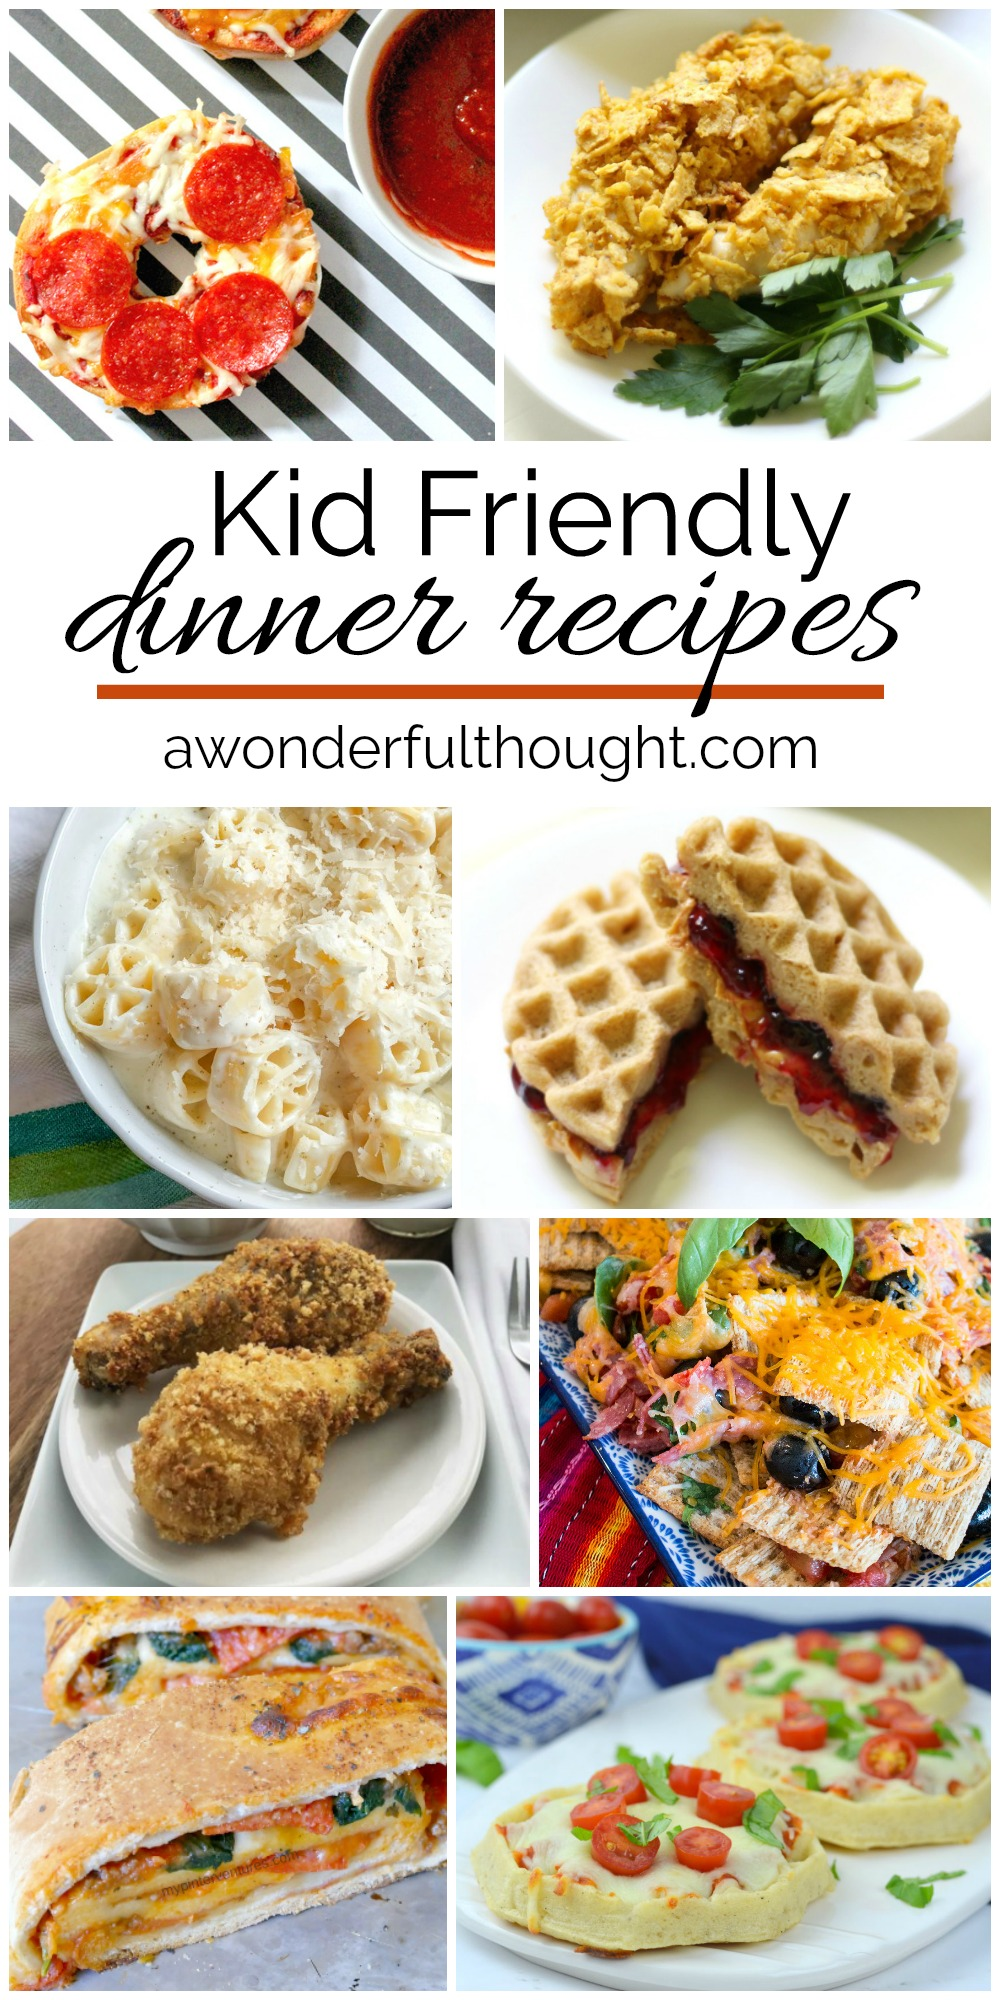 Kid Friendly Dinner Recipes A Wonderful Thought